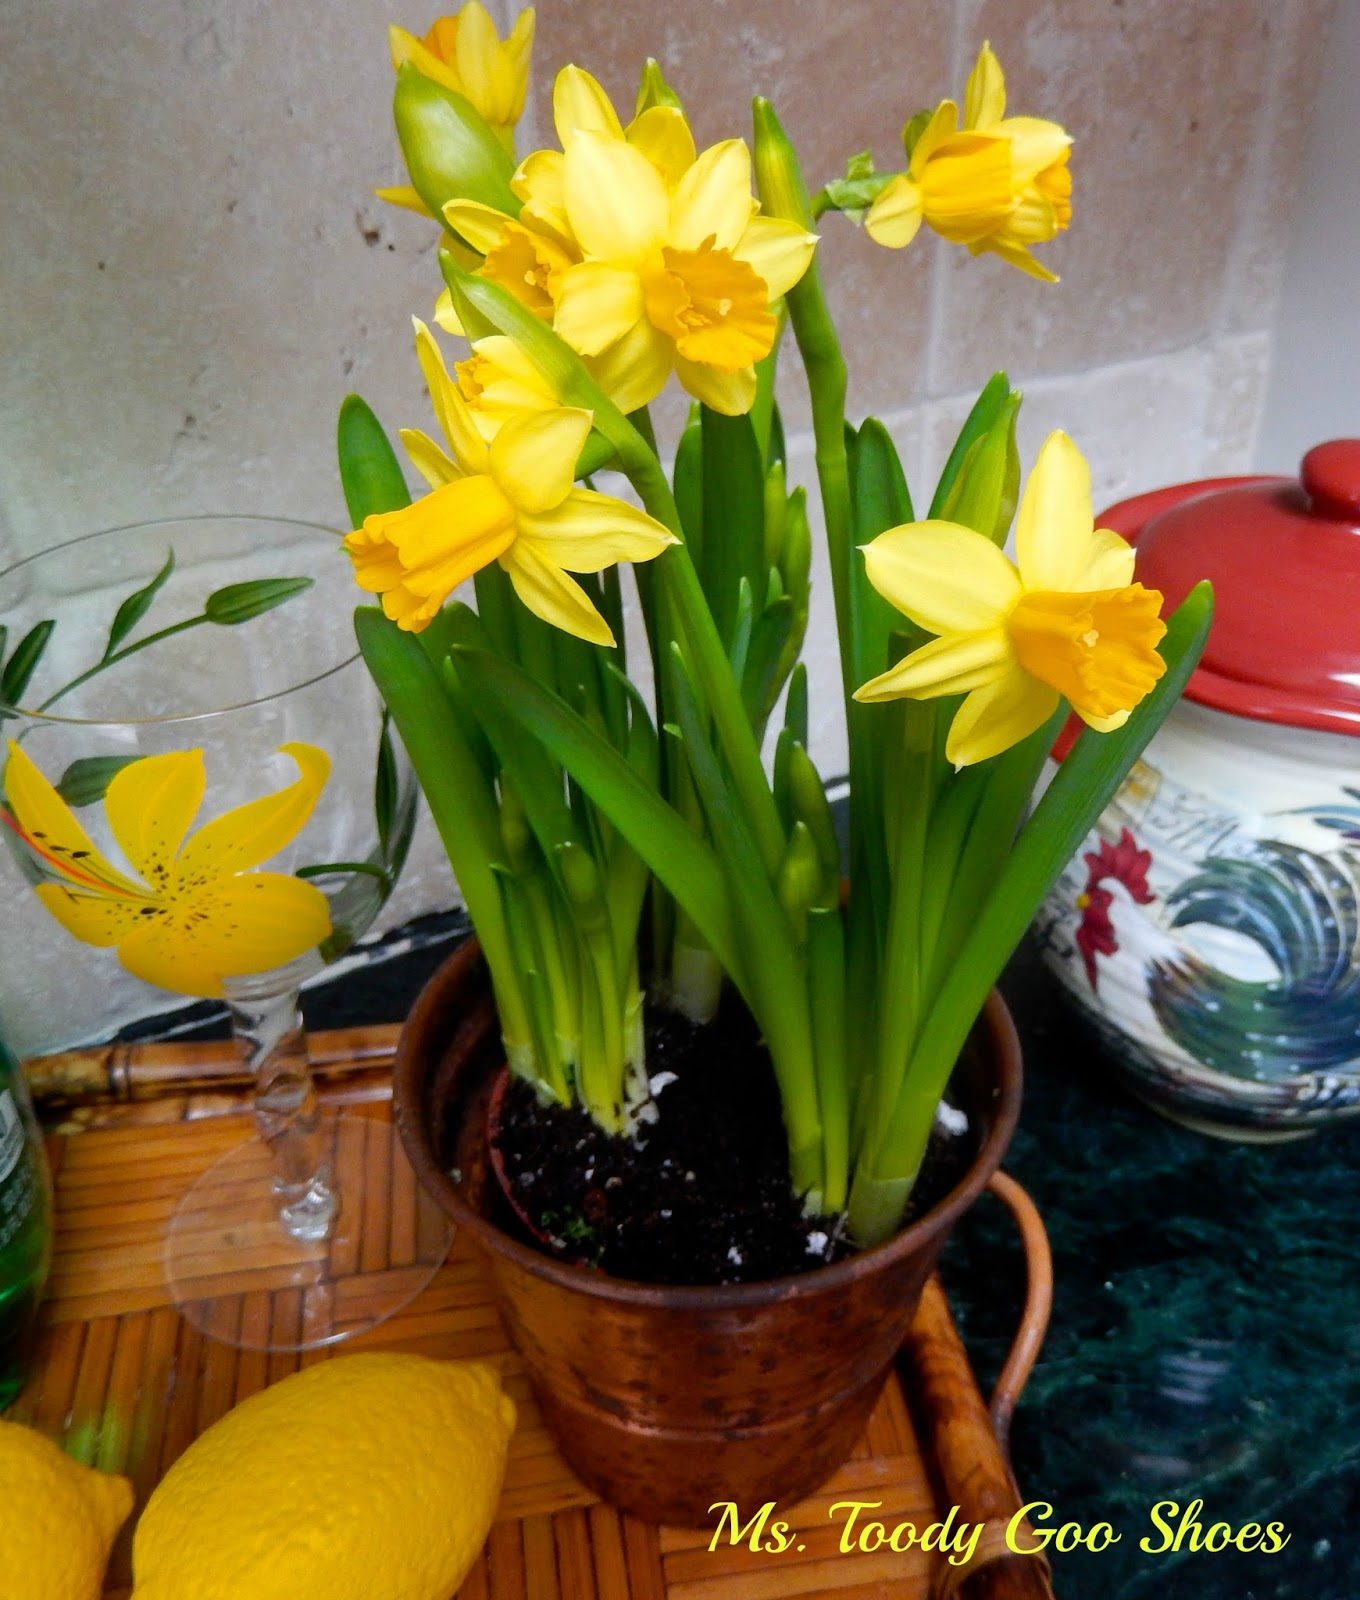 Daffodils in the Kitchen --- by Ms. Toody Goo Shoes